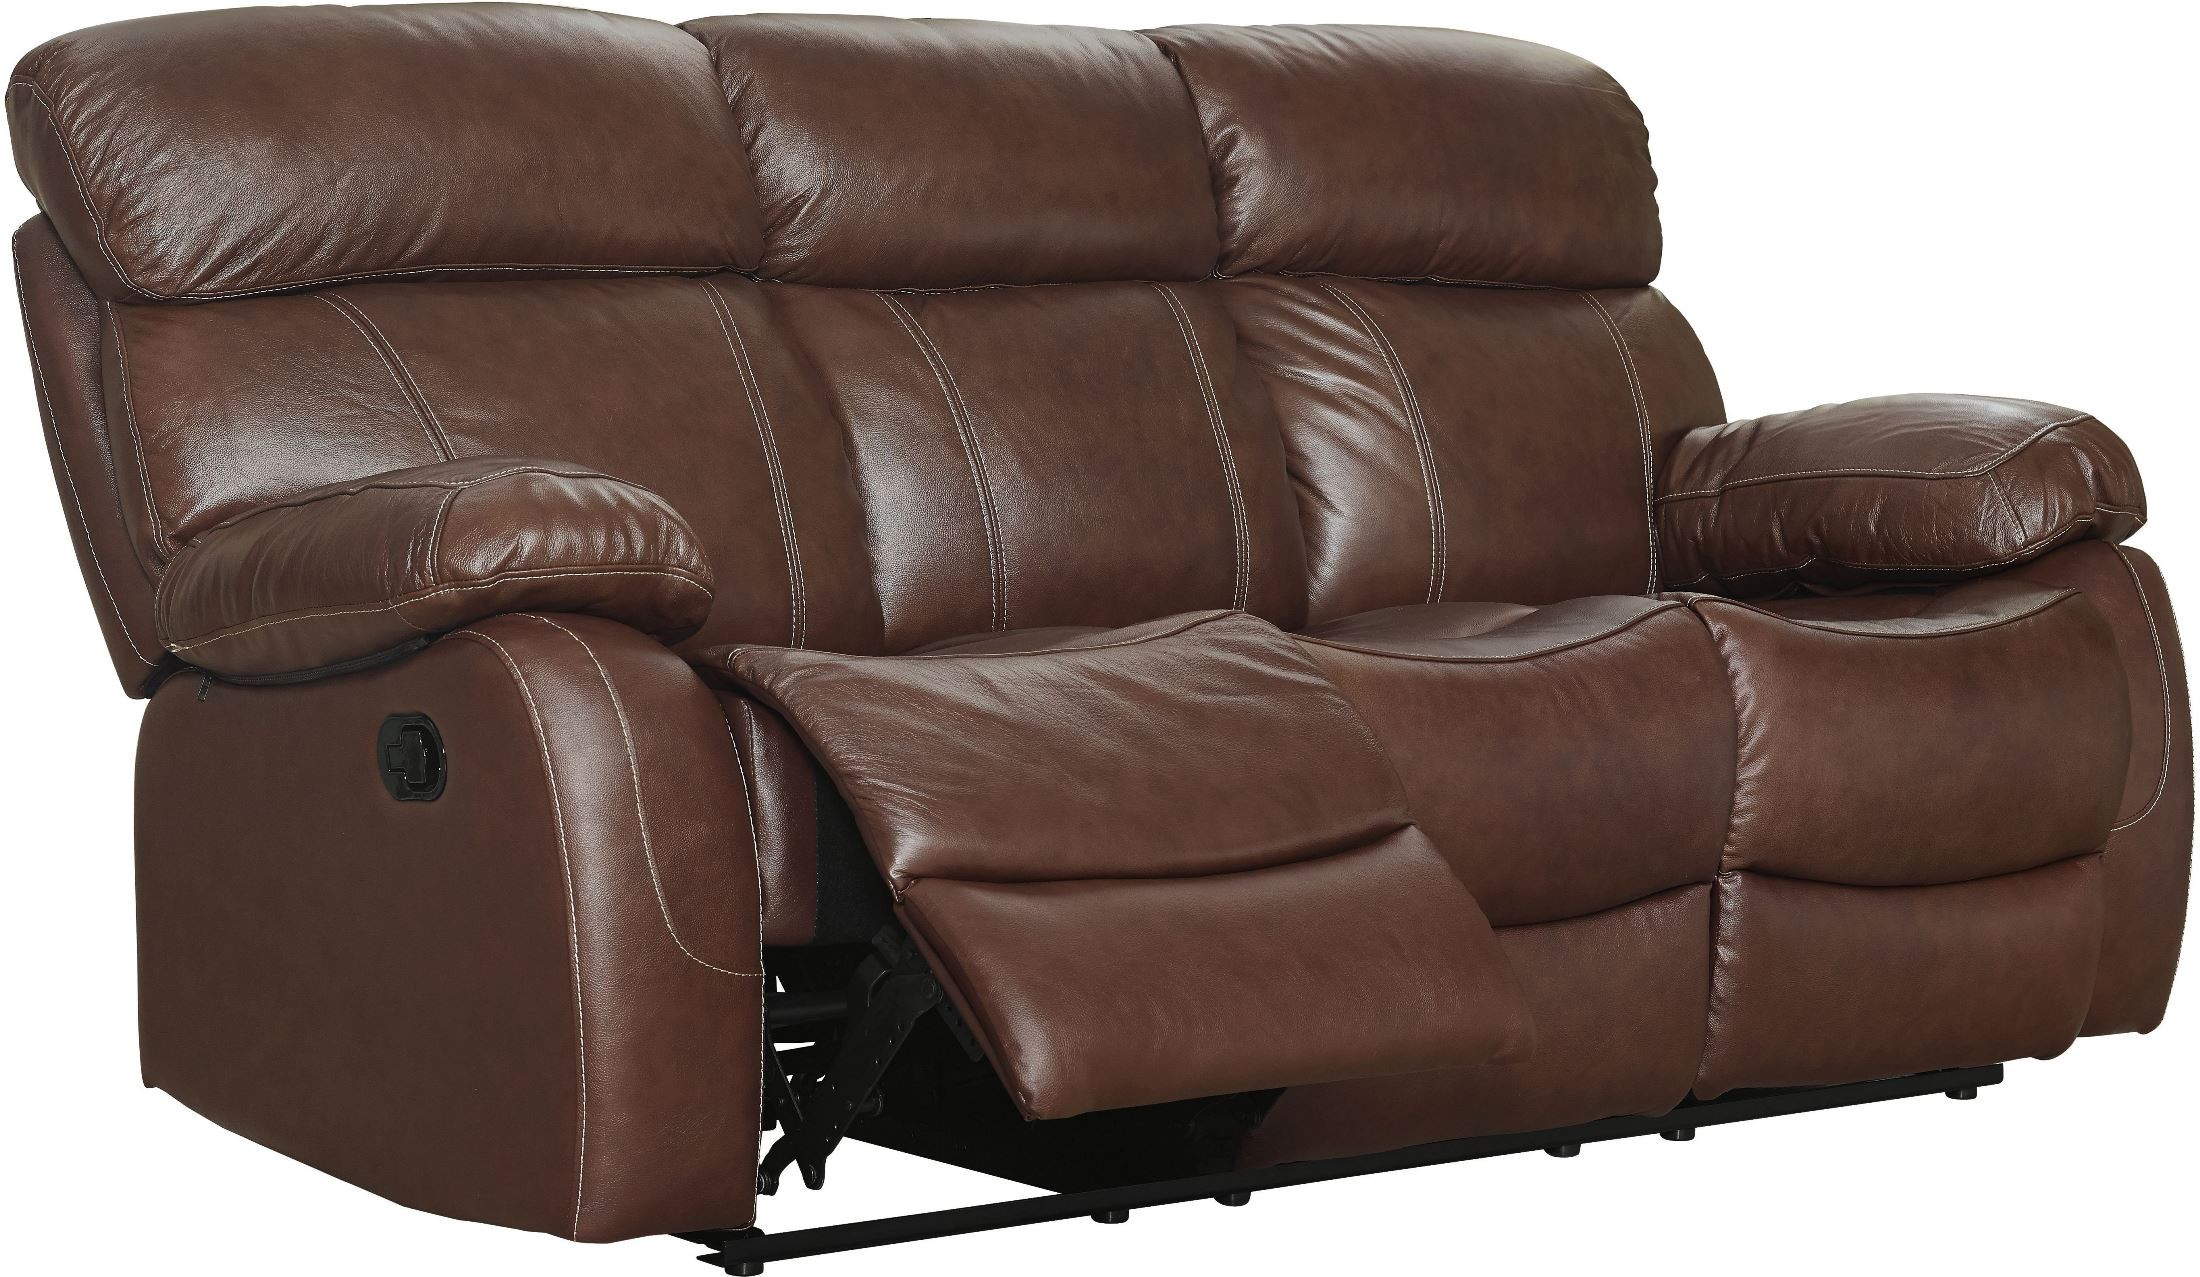 light brown leather reclining sofa contemporary sets living room dante set l2041 30 lbn